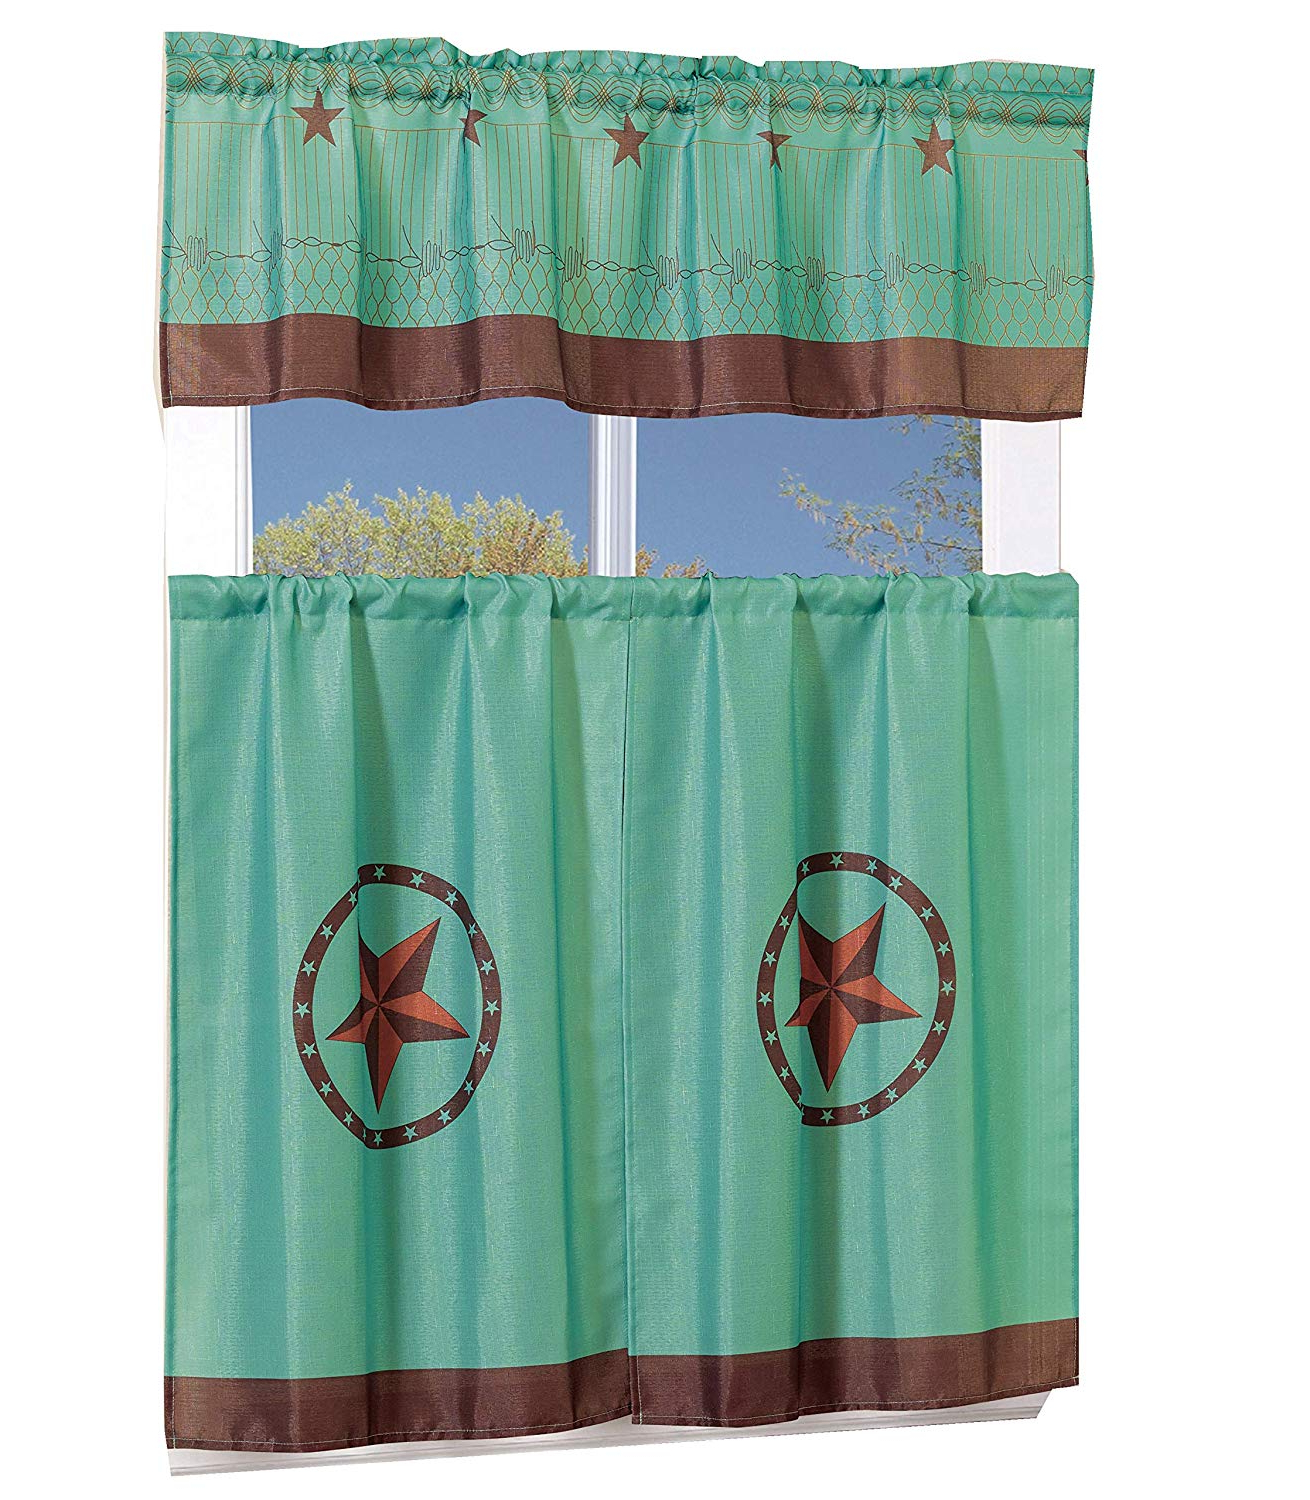 Trendy Red Delicious Apple 3 Piece Curtain Tiers Inside Details About Curtain Set 3 Piece Wester Texas Star Valance Kitchen Cafe Turquoise Home Decor (View 17 of 20)